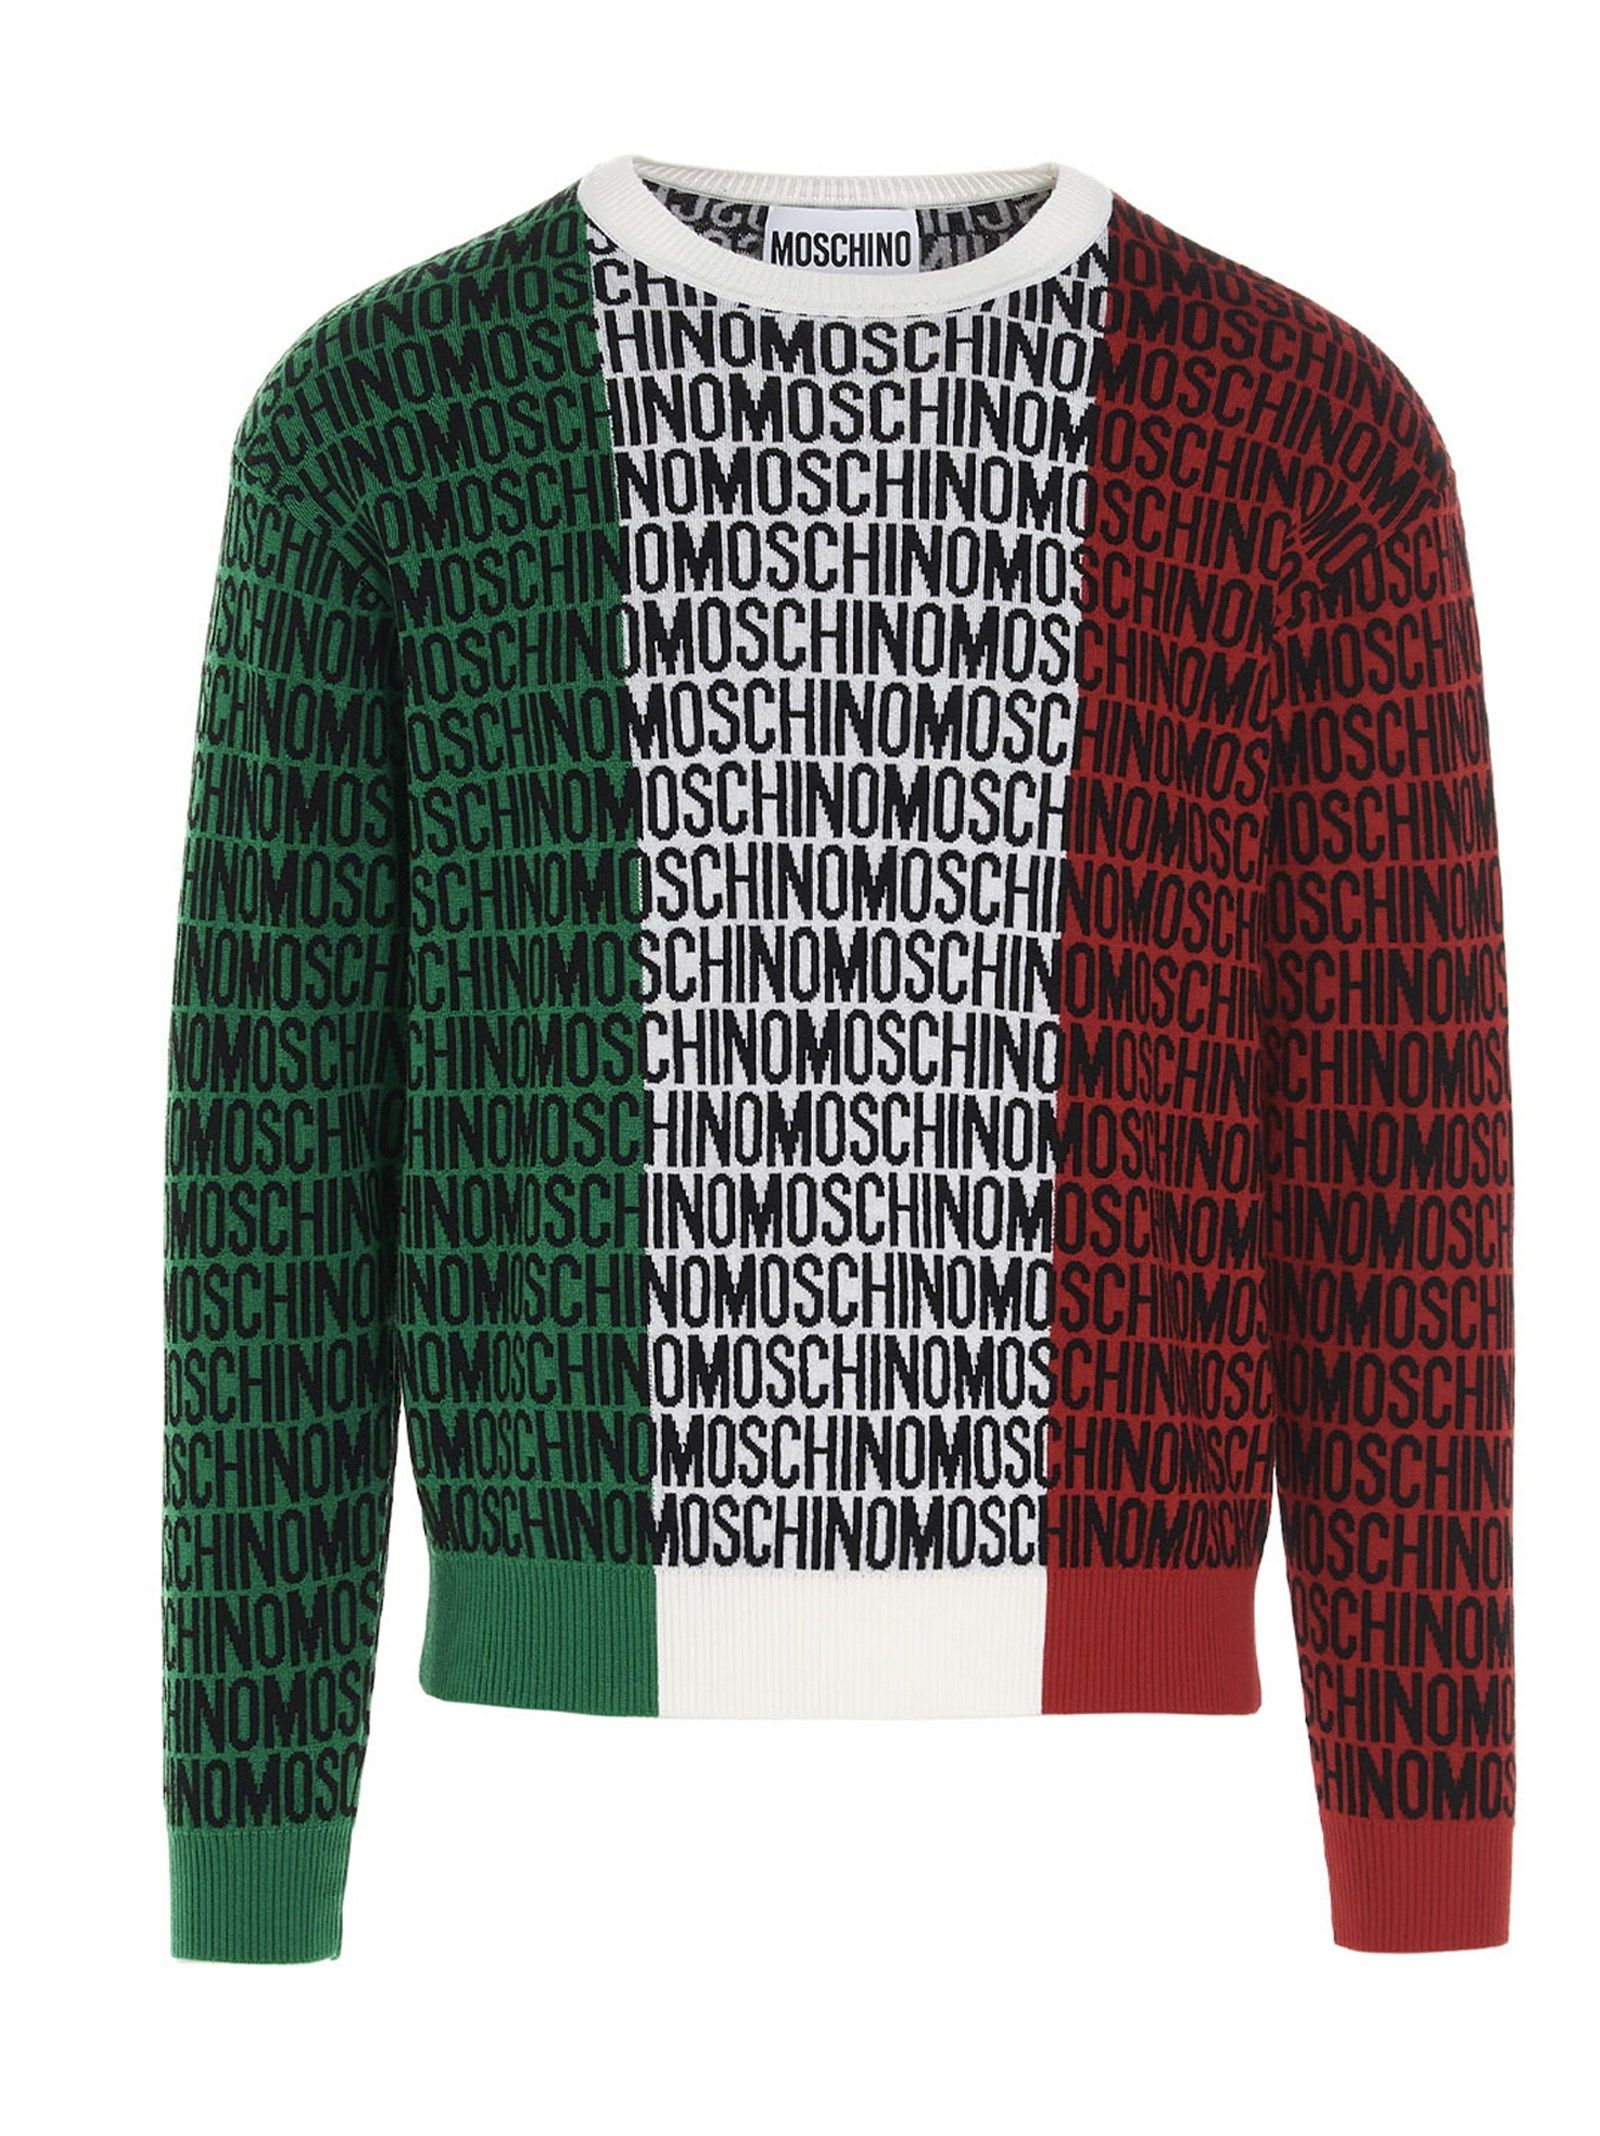 Moschino MOSCHINO MEN'S MULTICOLOR OTHER MATERIALS SWEATER